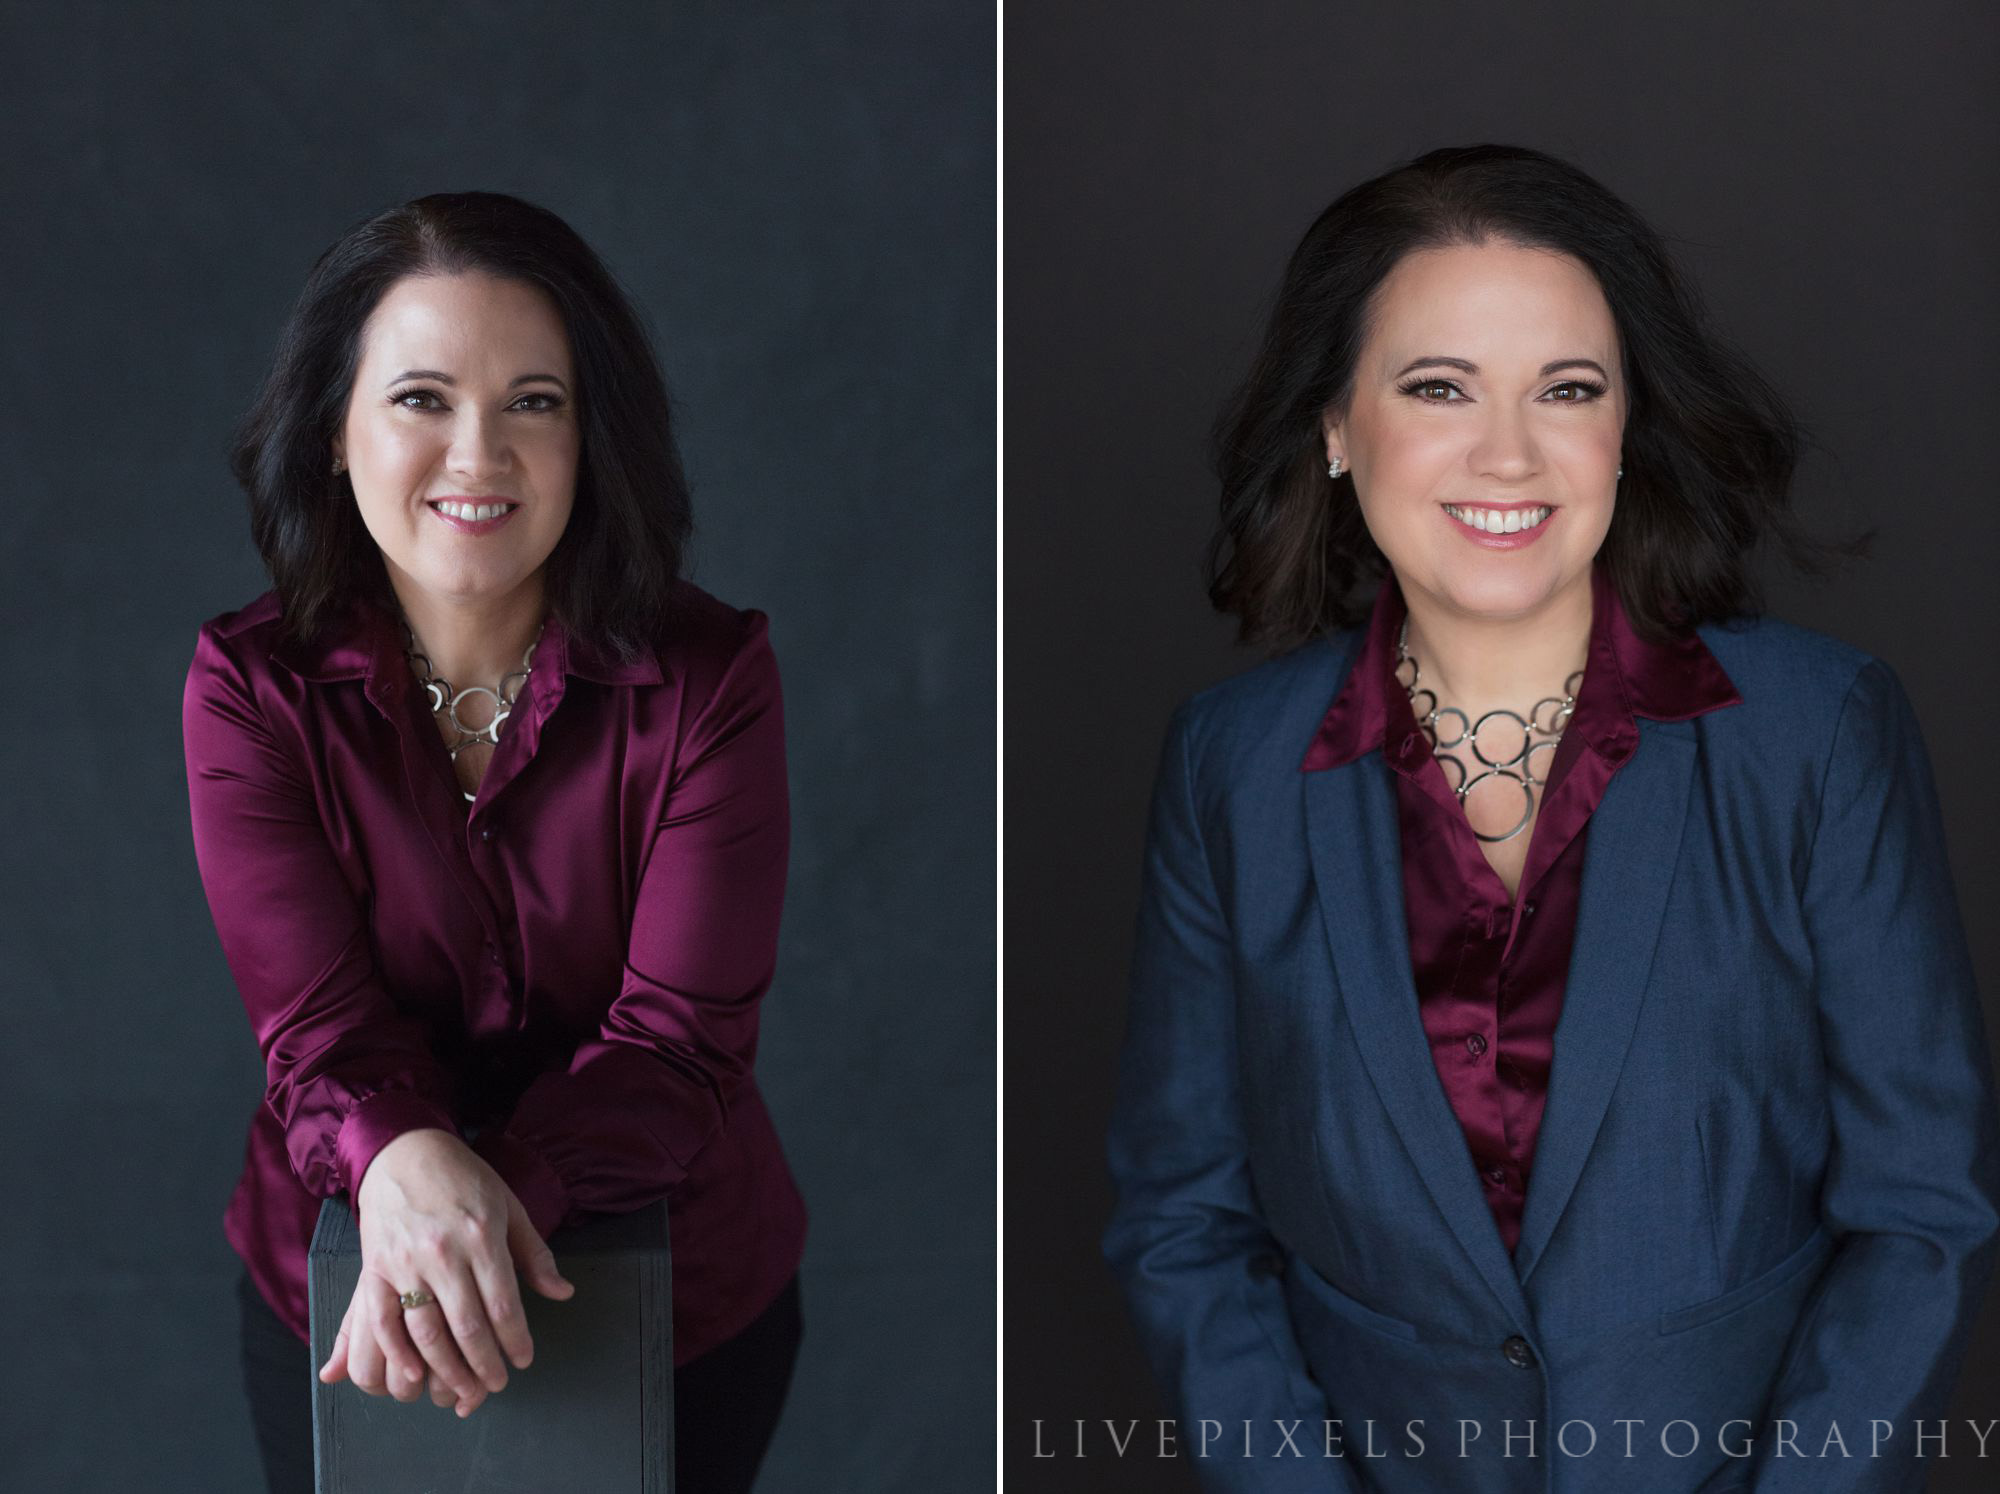 Toronto Professional Head Shots for Real Estate Remax Agent - Livepixels Photography / livepixelsphotography.com